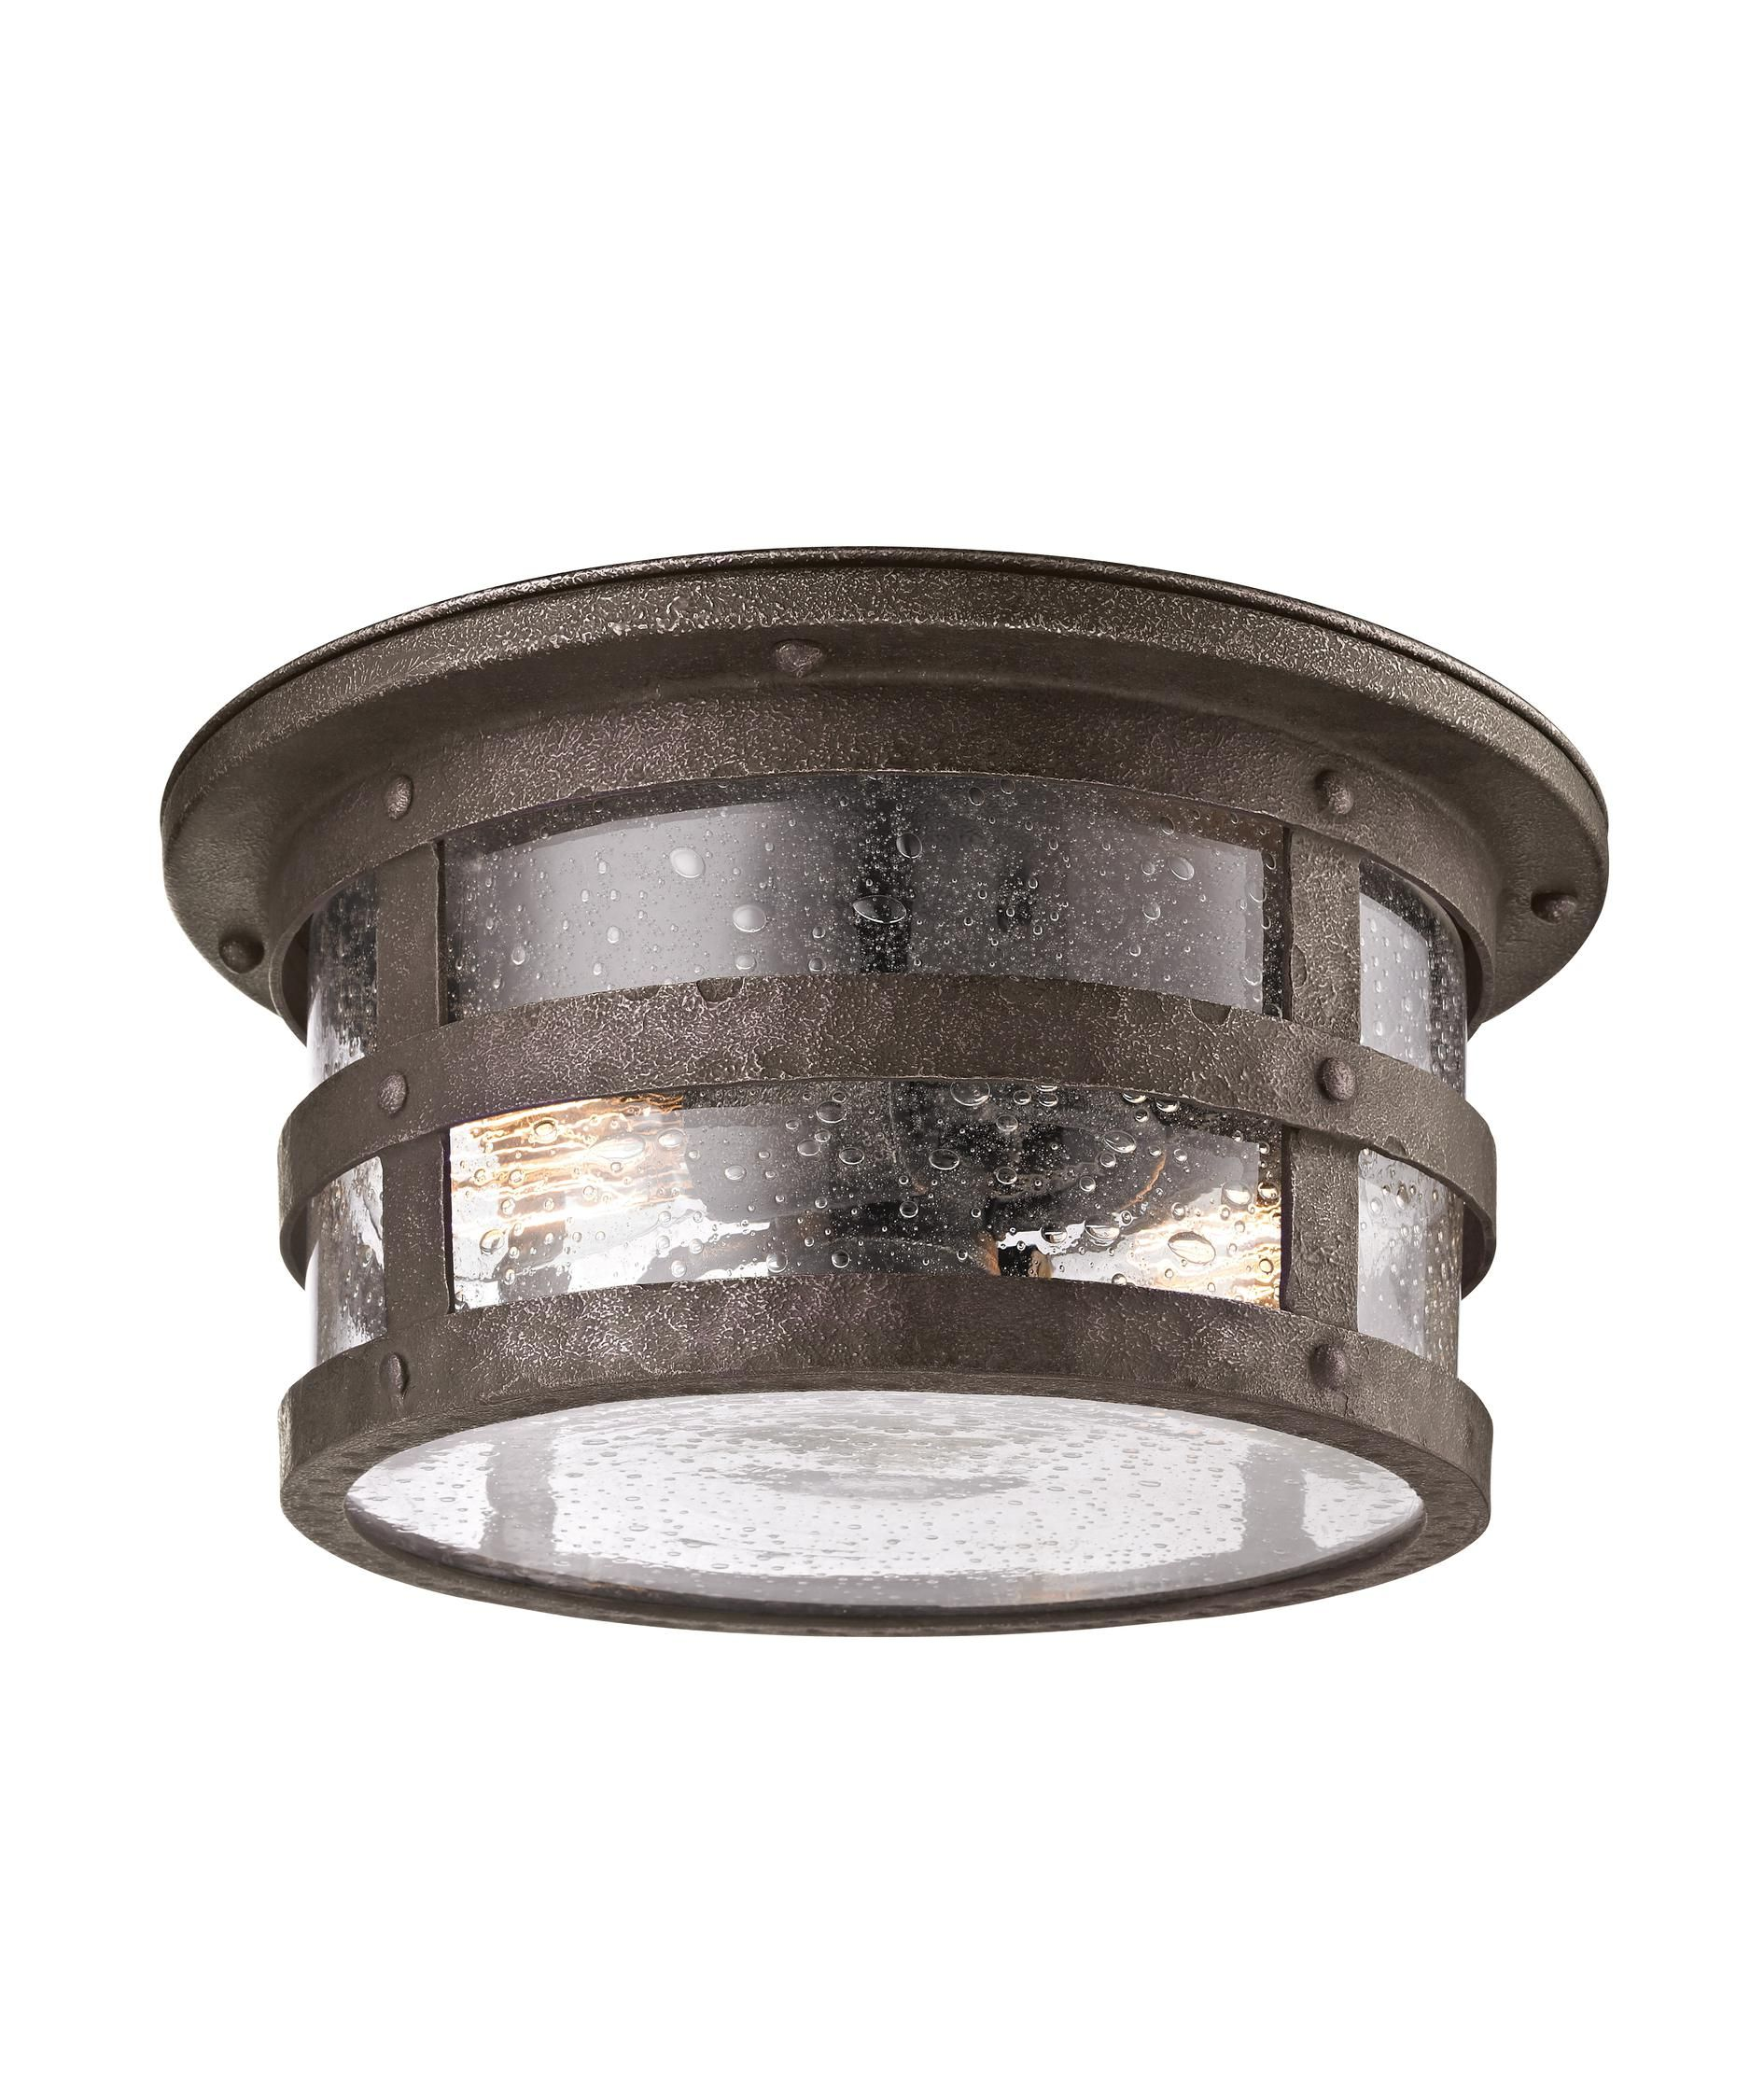 Barbosa 15 2 light outdoor outdoor flush mount in barbosa bronze barbosa 15 2 light outdoor outdoor flush mount in barbosa bronze 2 light outdoor aloadofball Images